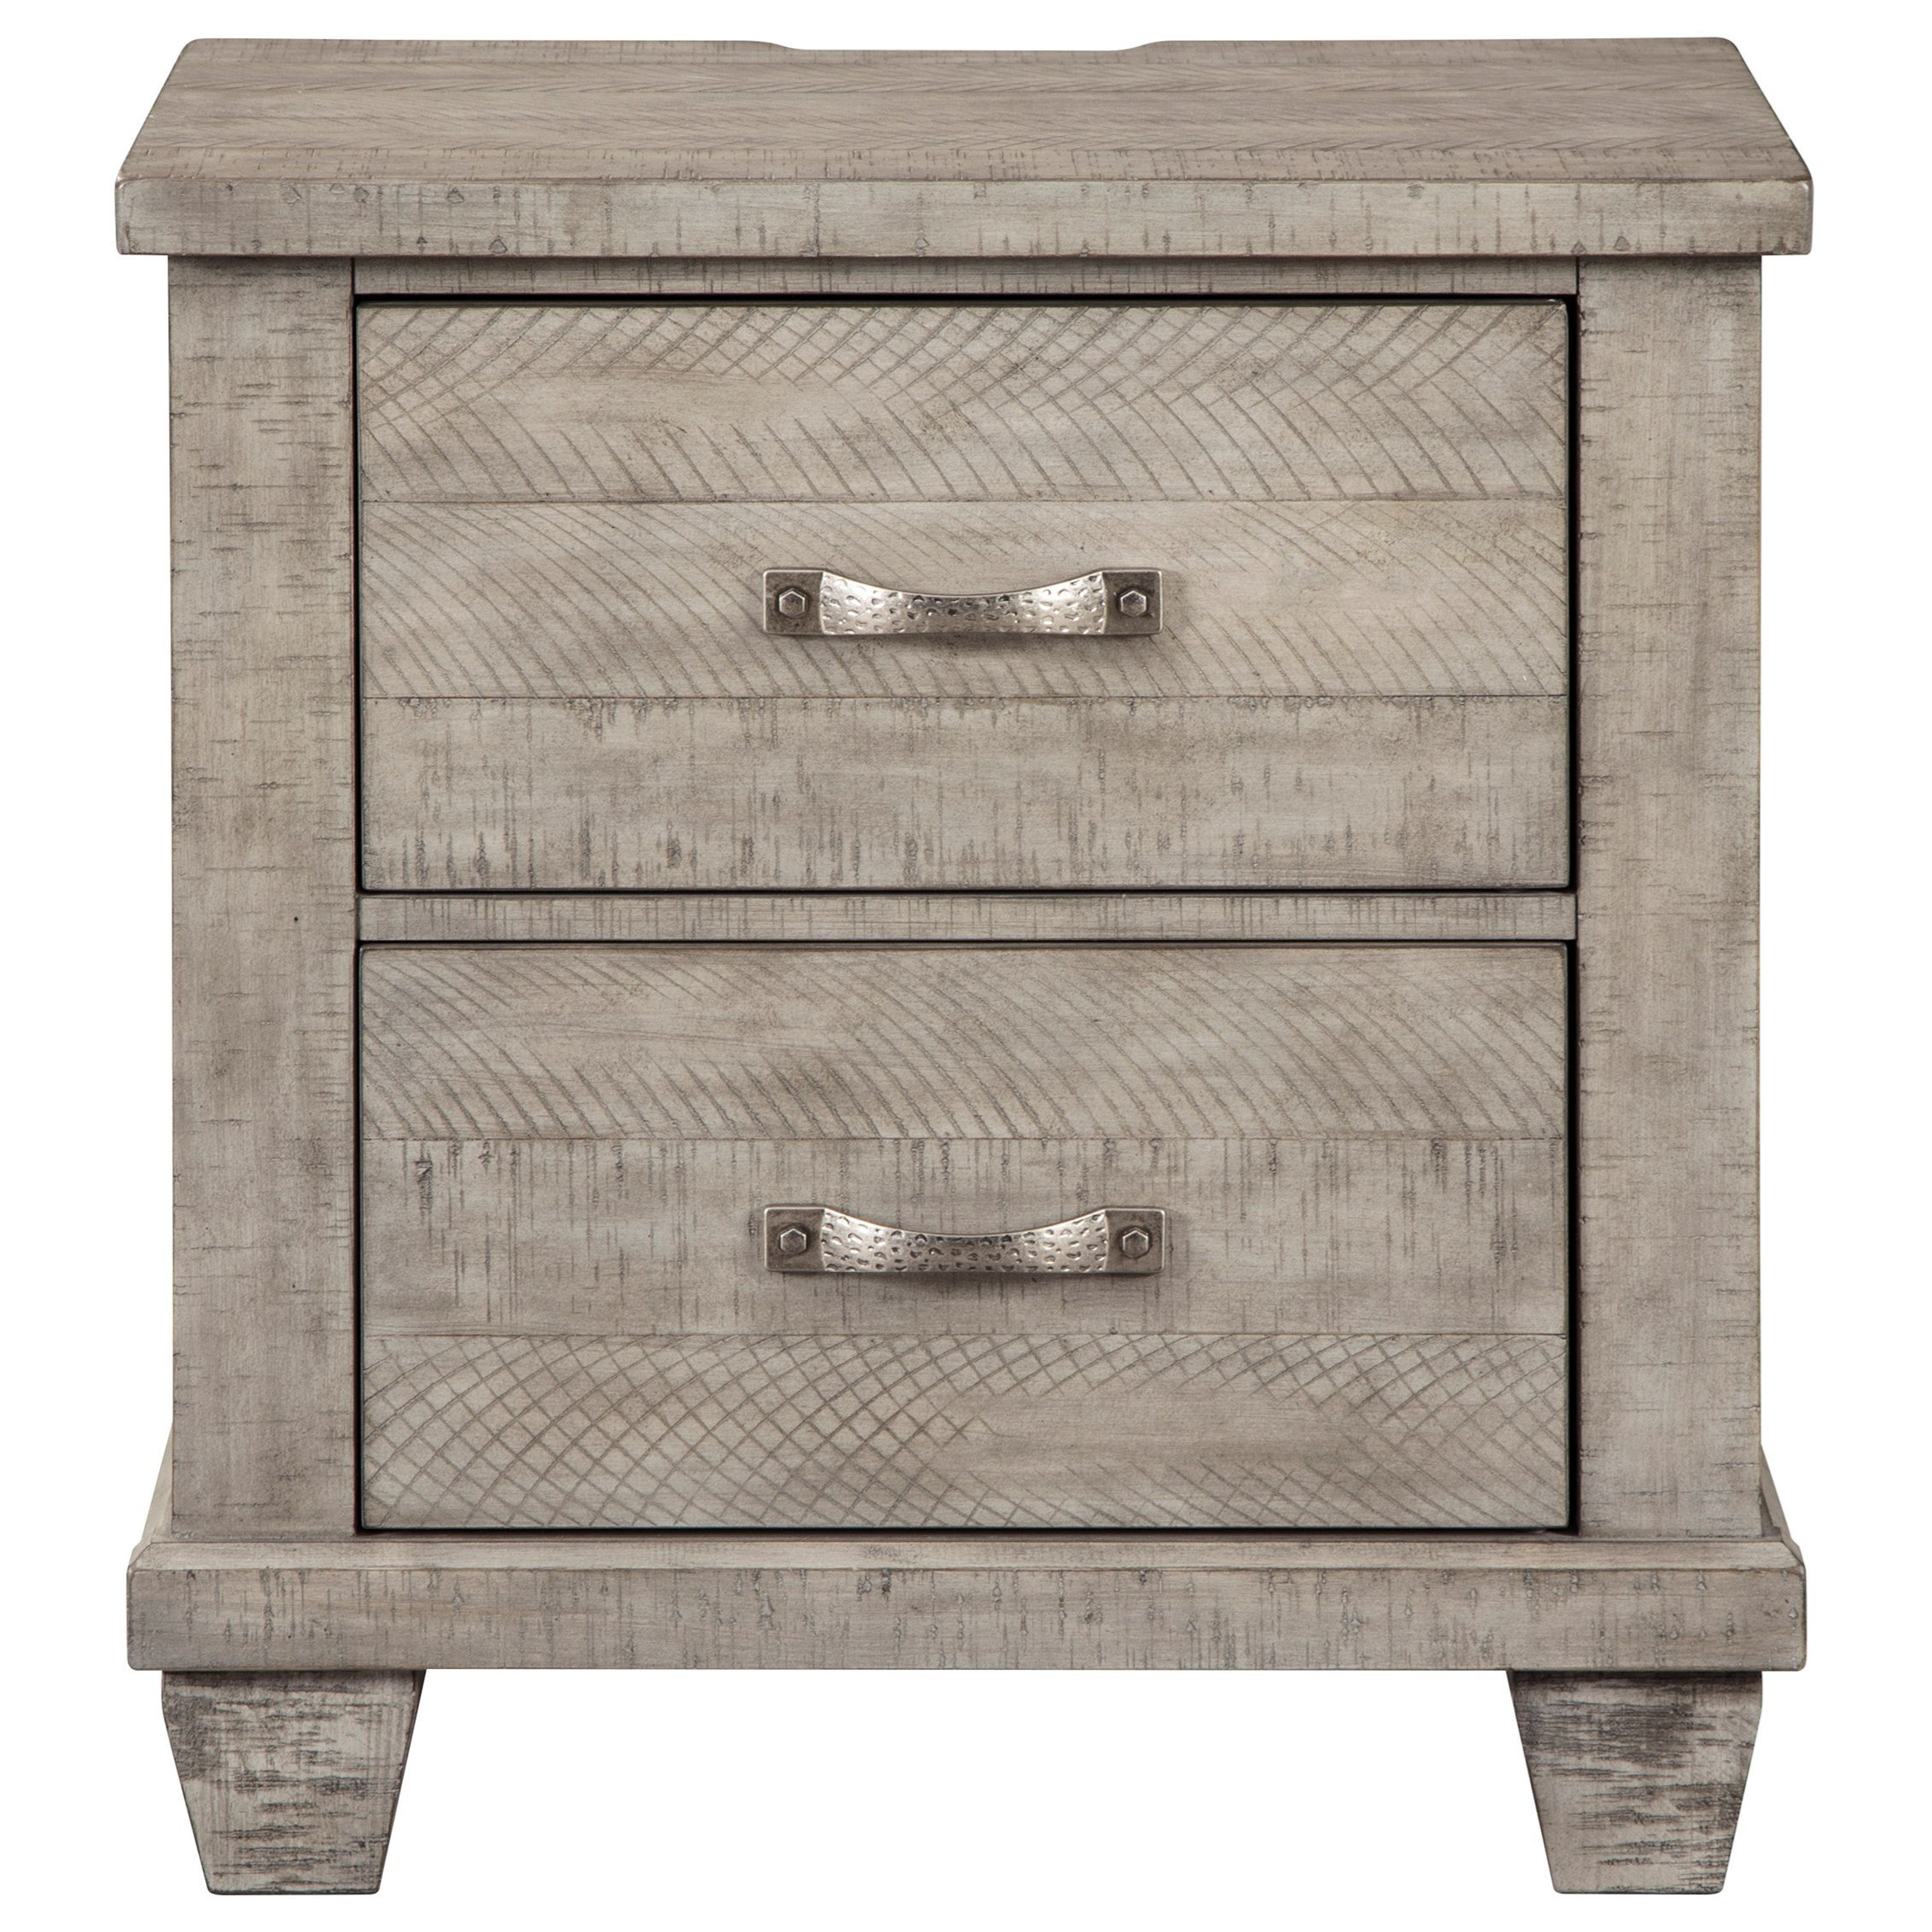 Benchcraft By Ashley Naydell Rustic 2 Drawer Nightstand In Gray Finish Royal Furniture Nightstands